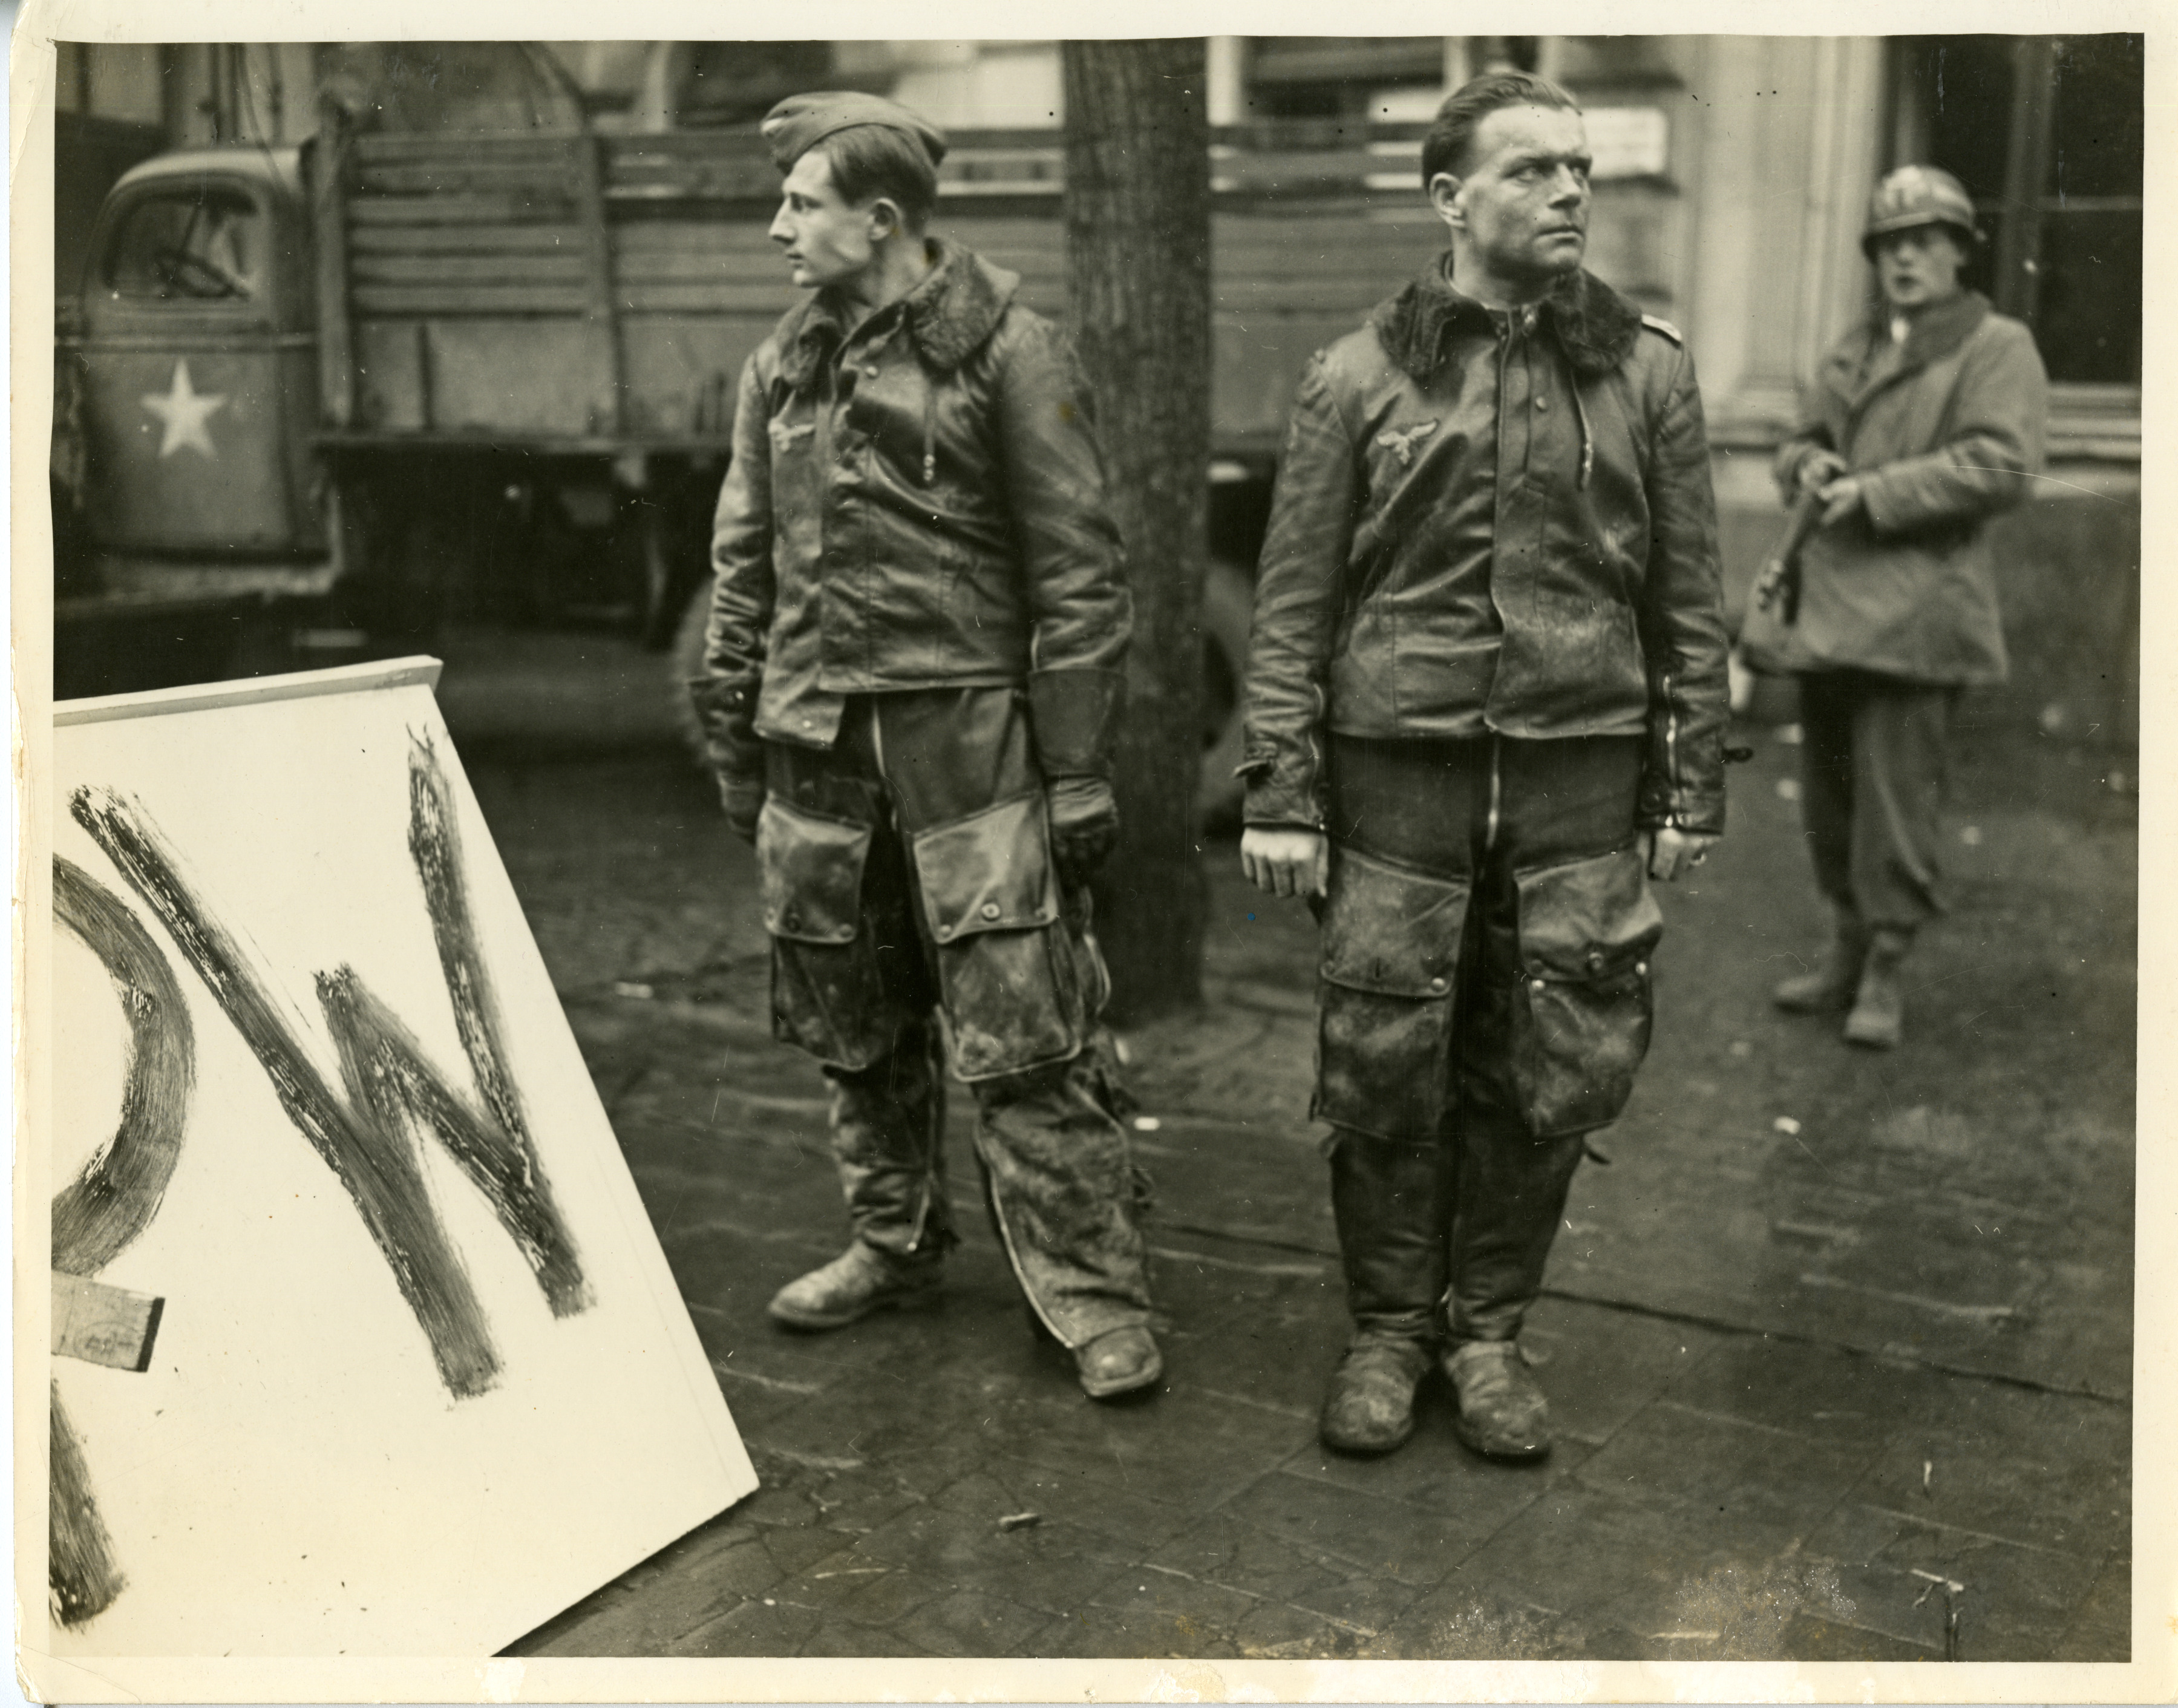 An American military police officer holds captive two Nazi pilots in